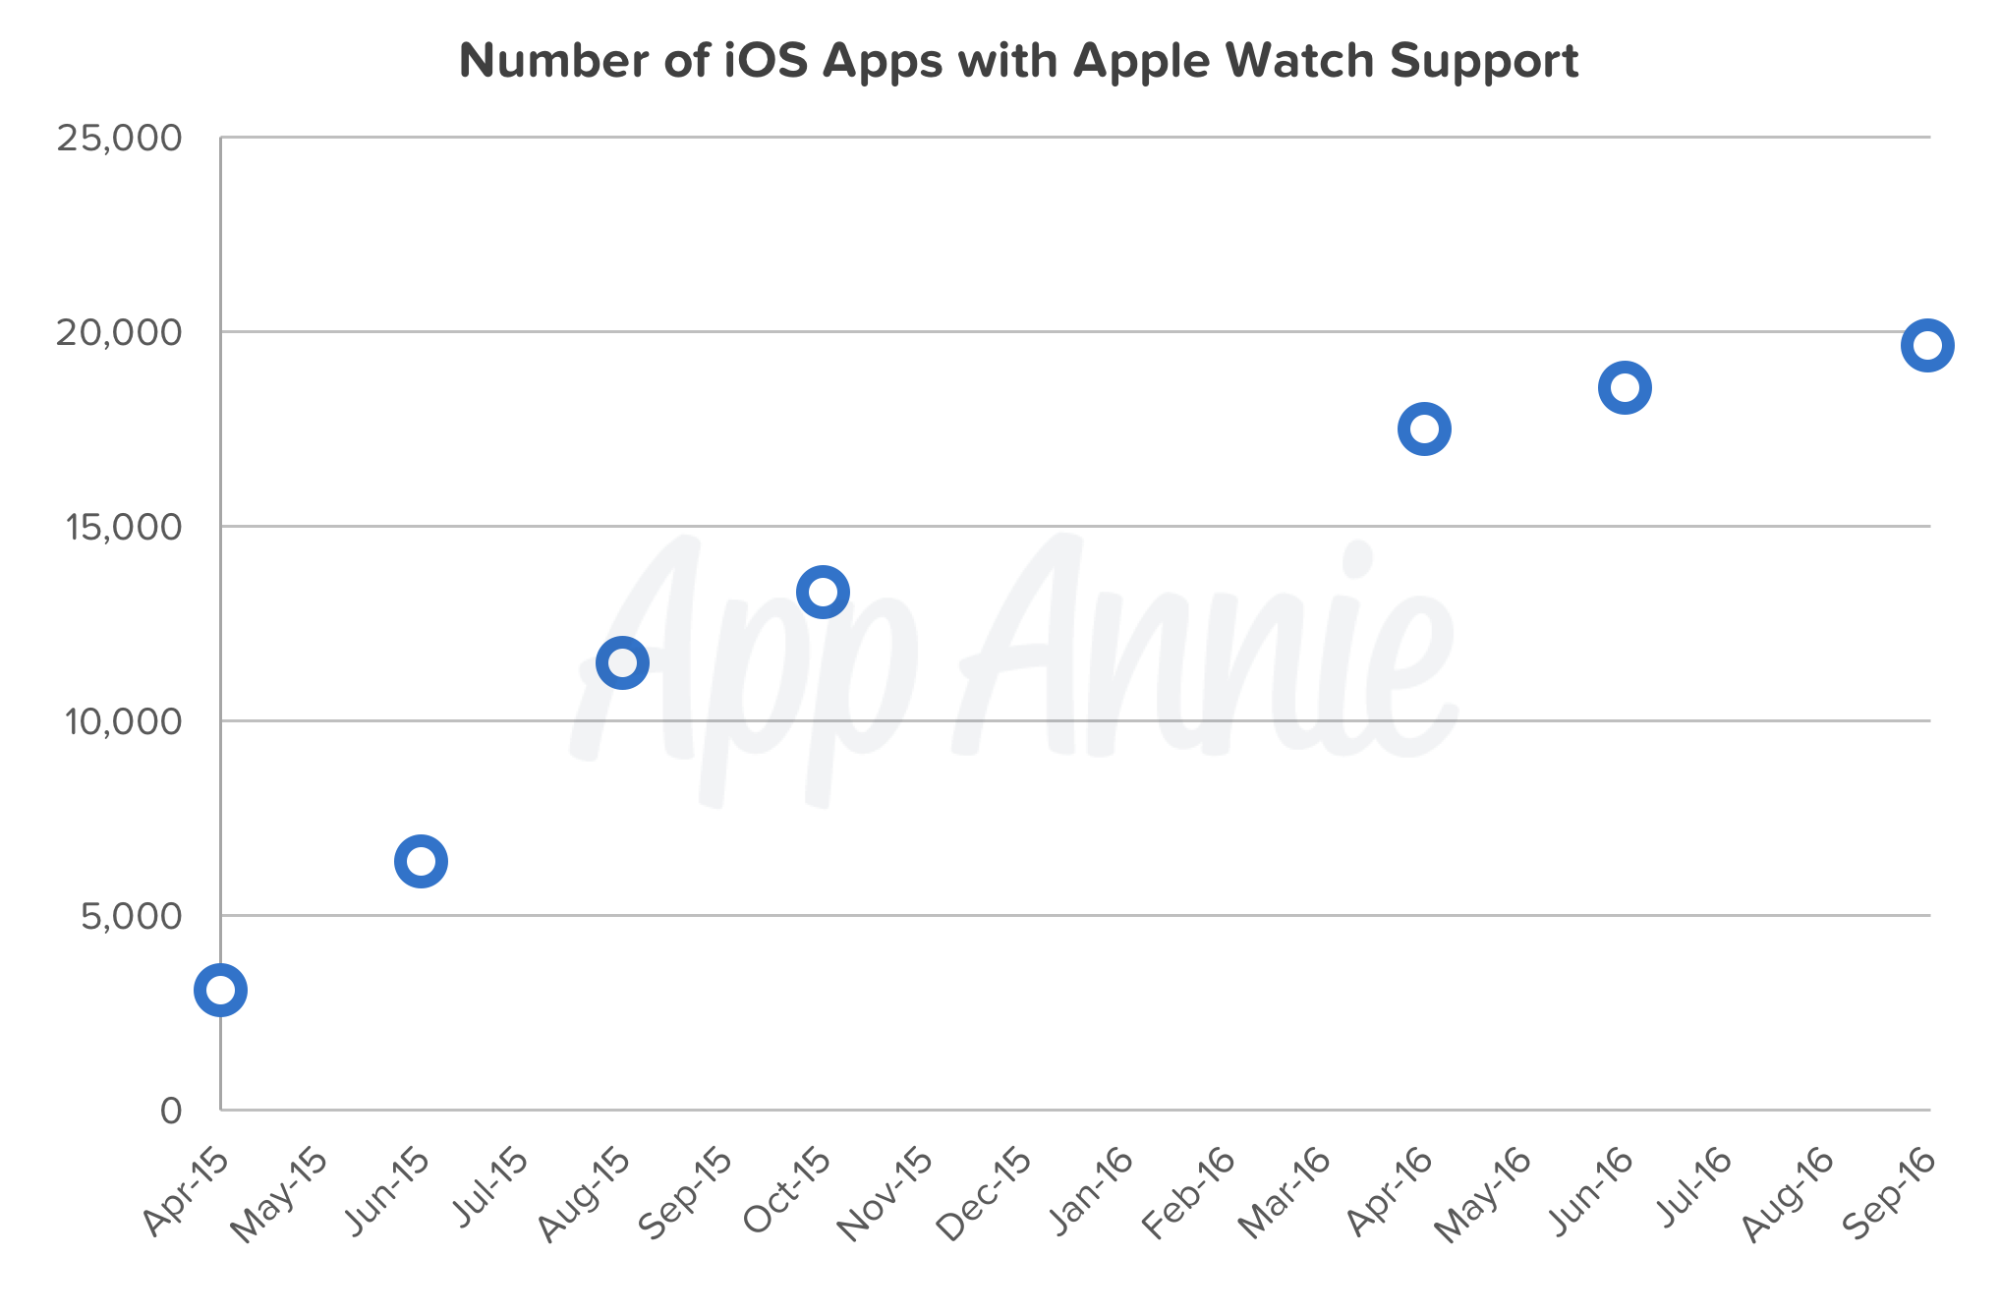 Number iOS Apps Apple Watch Support